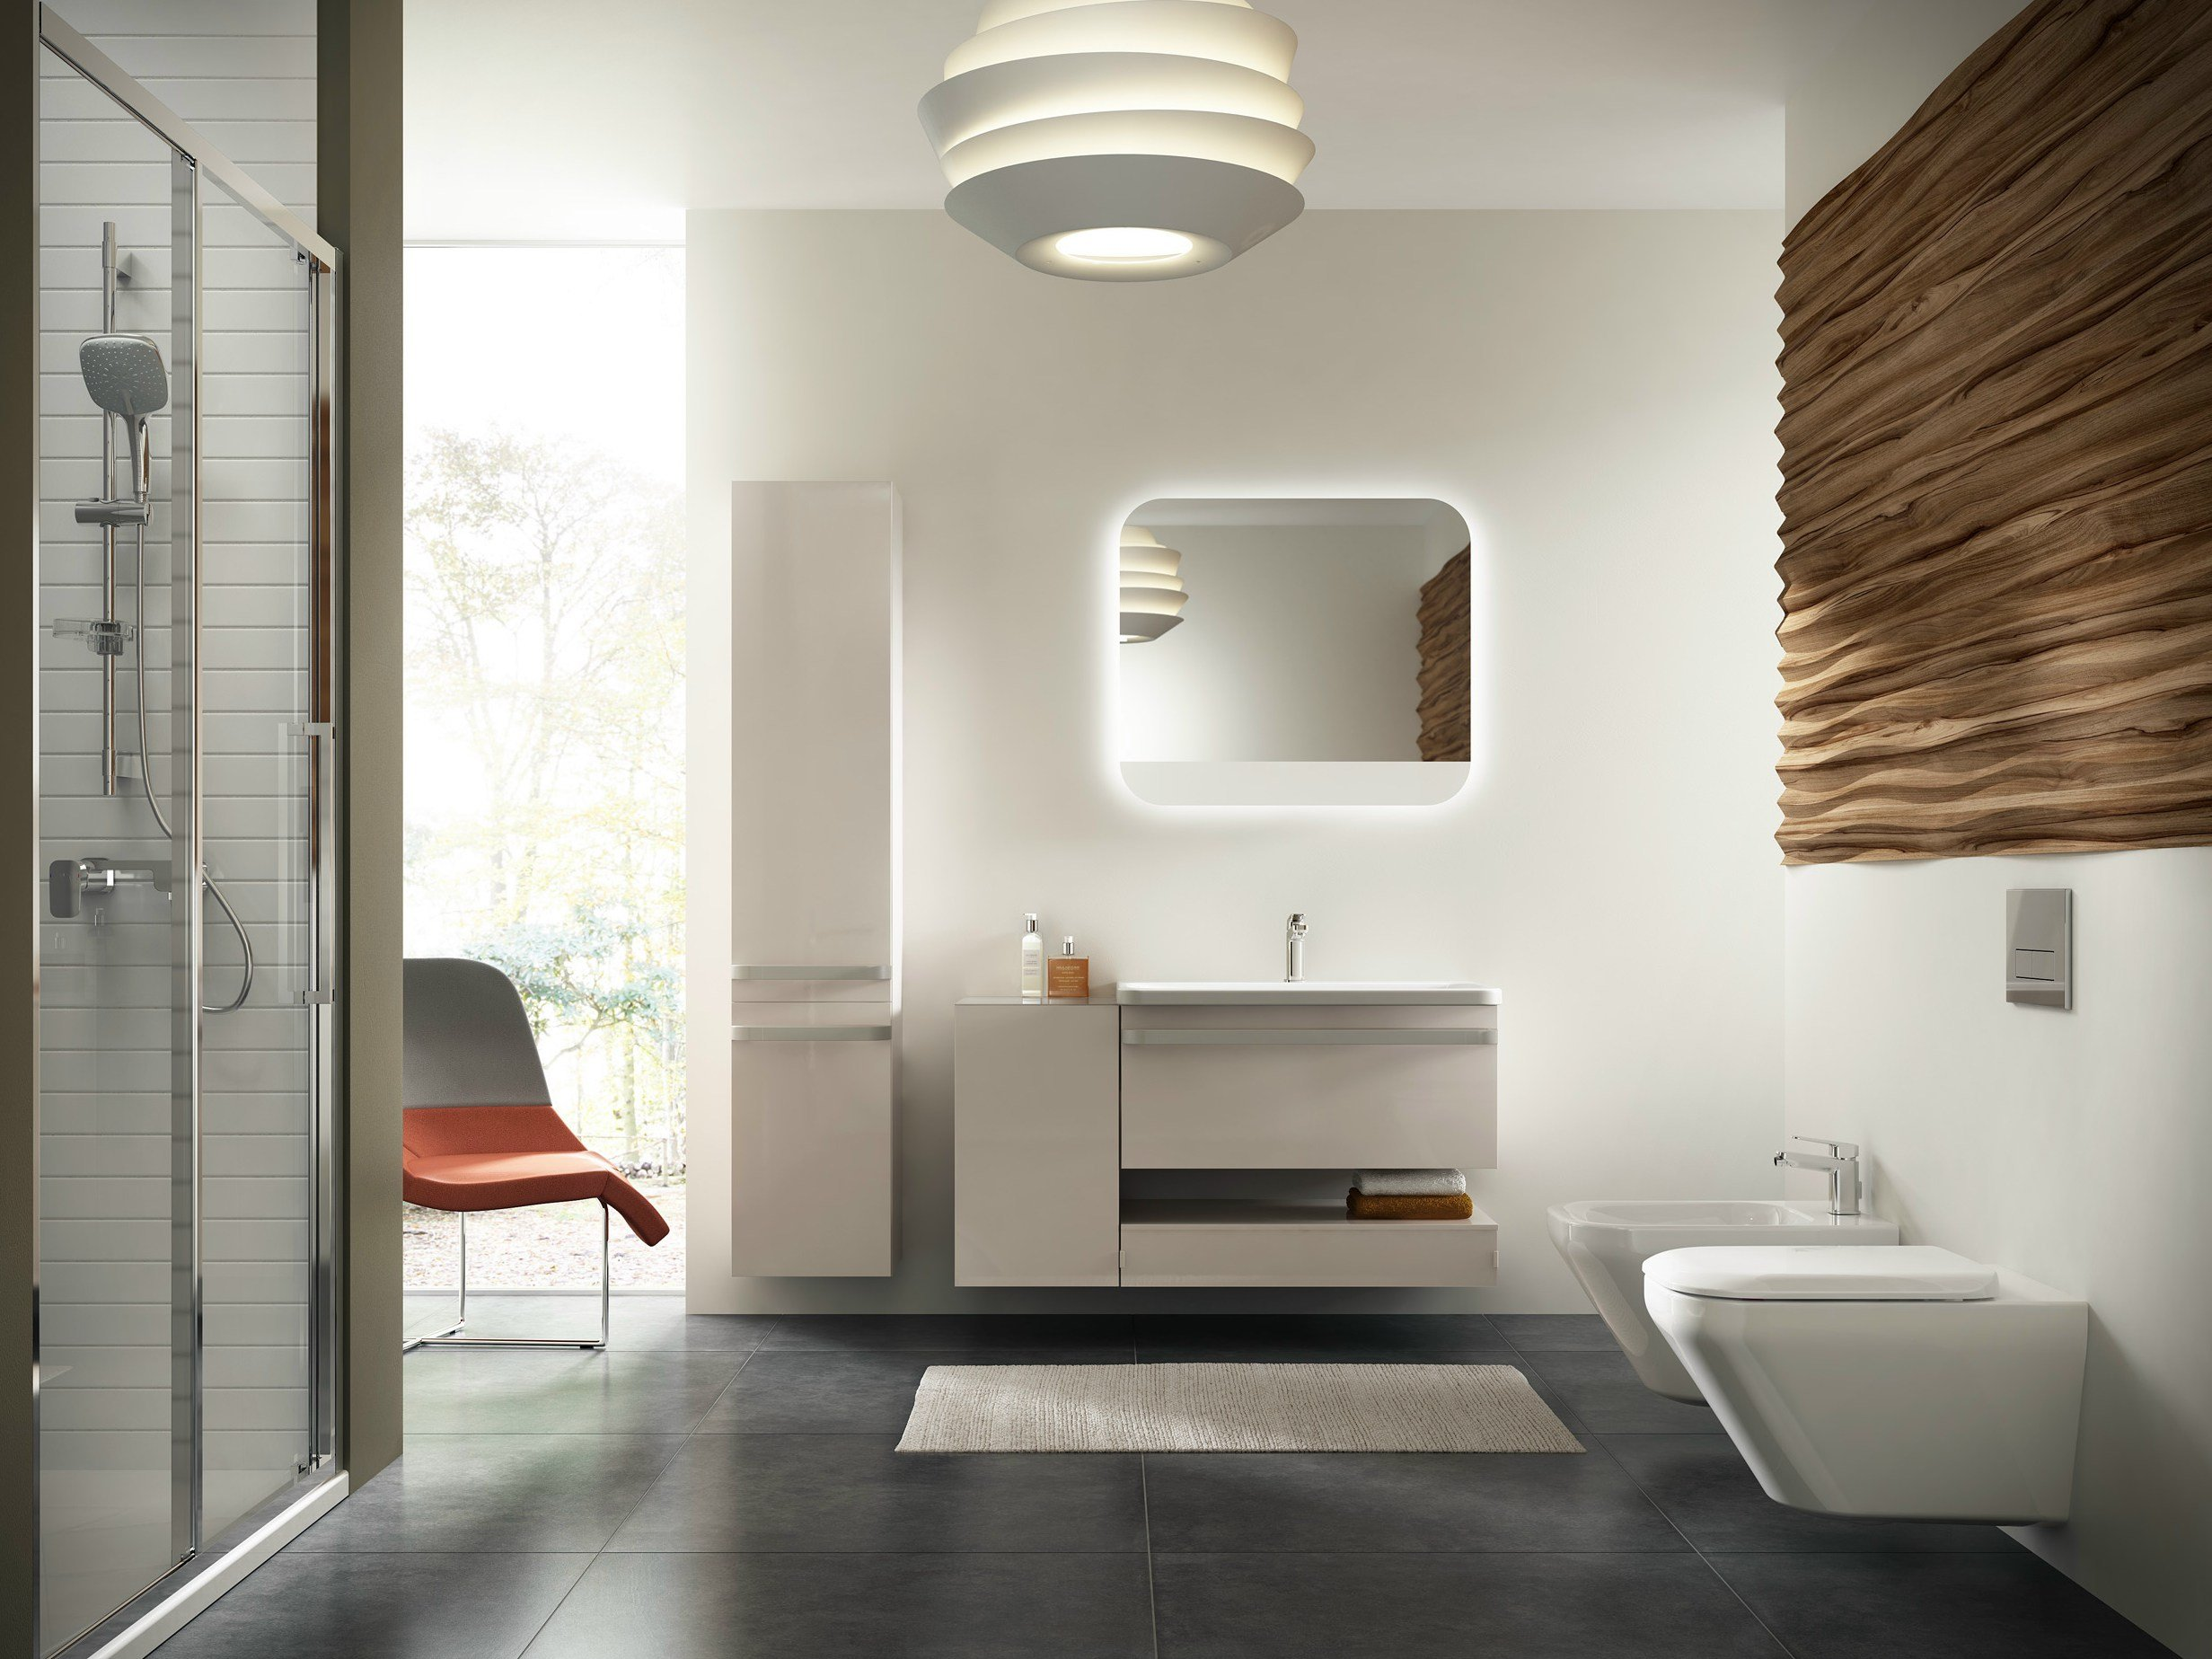 arredo bagno completo tonic ii by ideal standard design artefakt ... - Arredo Bagno Ideal Standard Prezzi